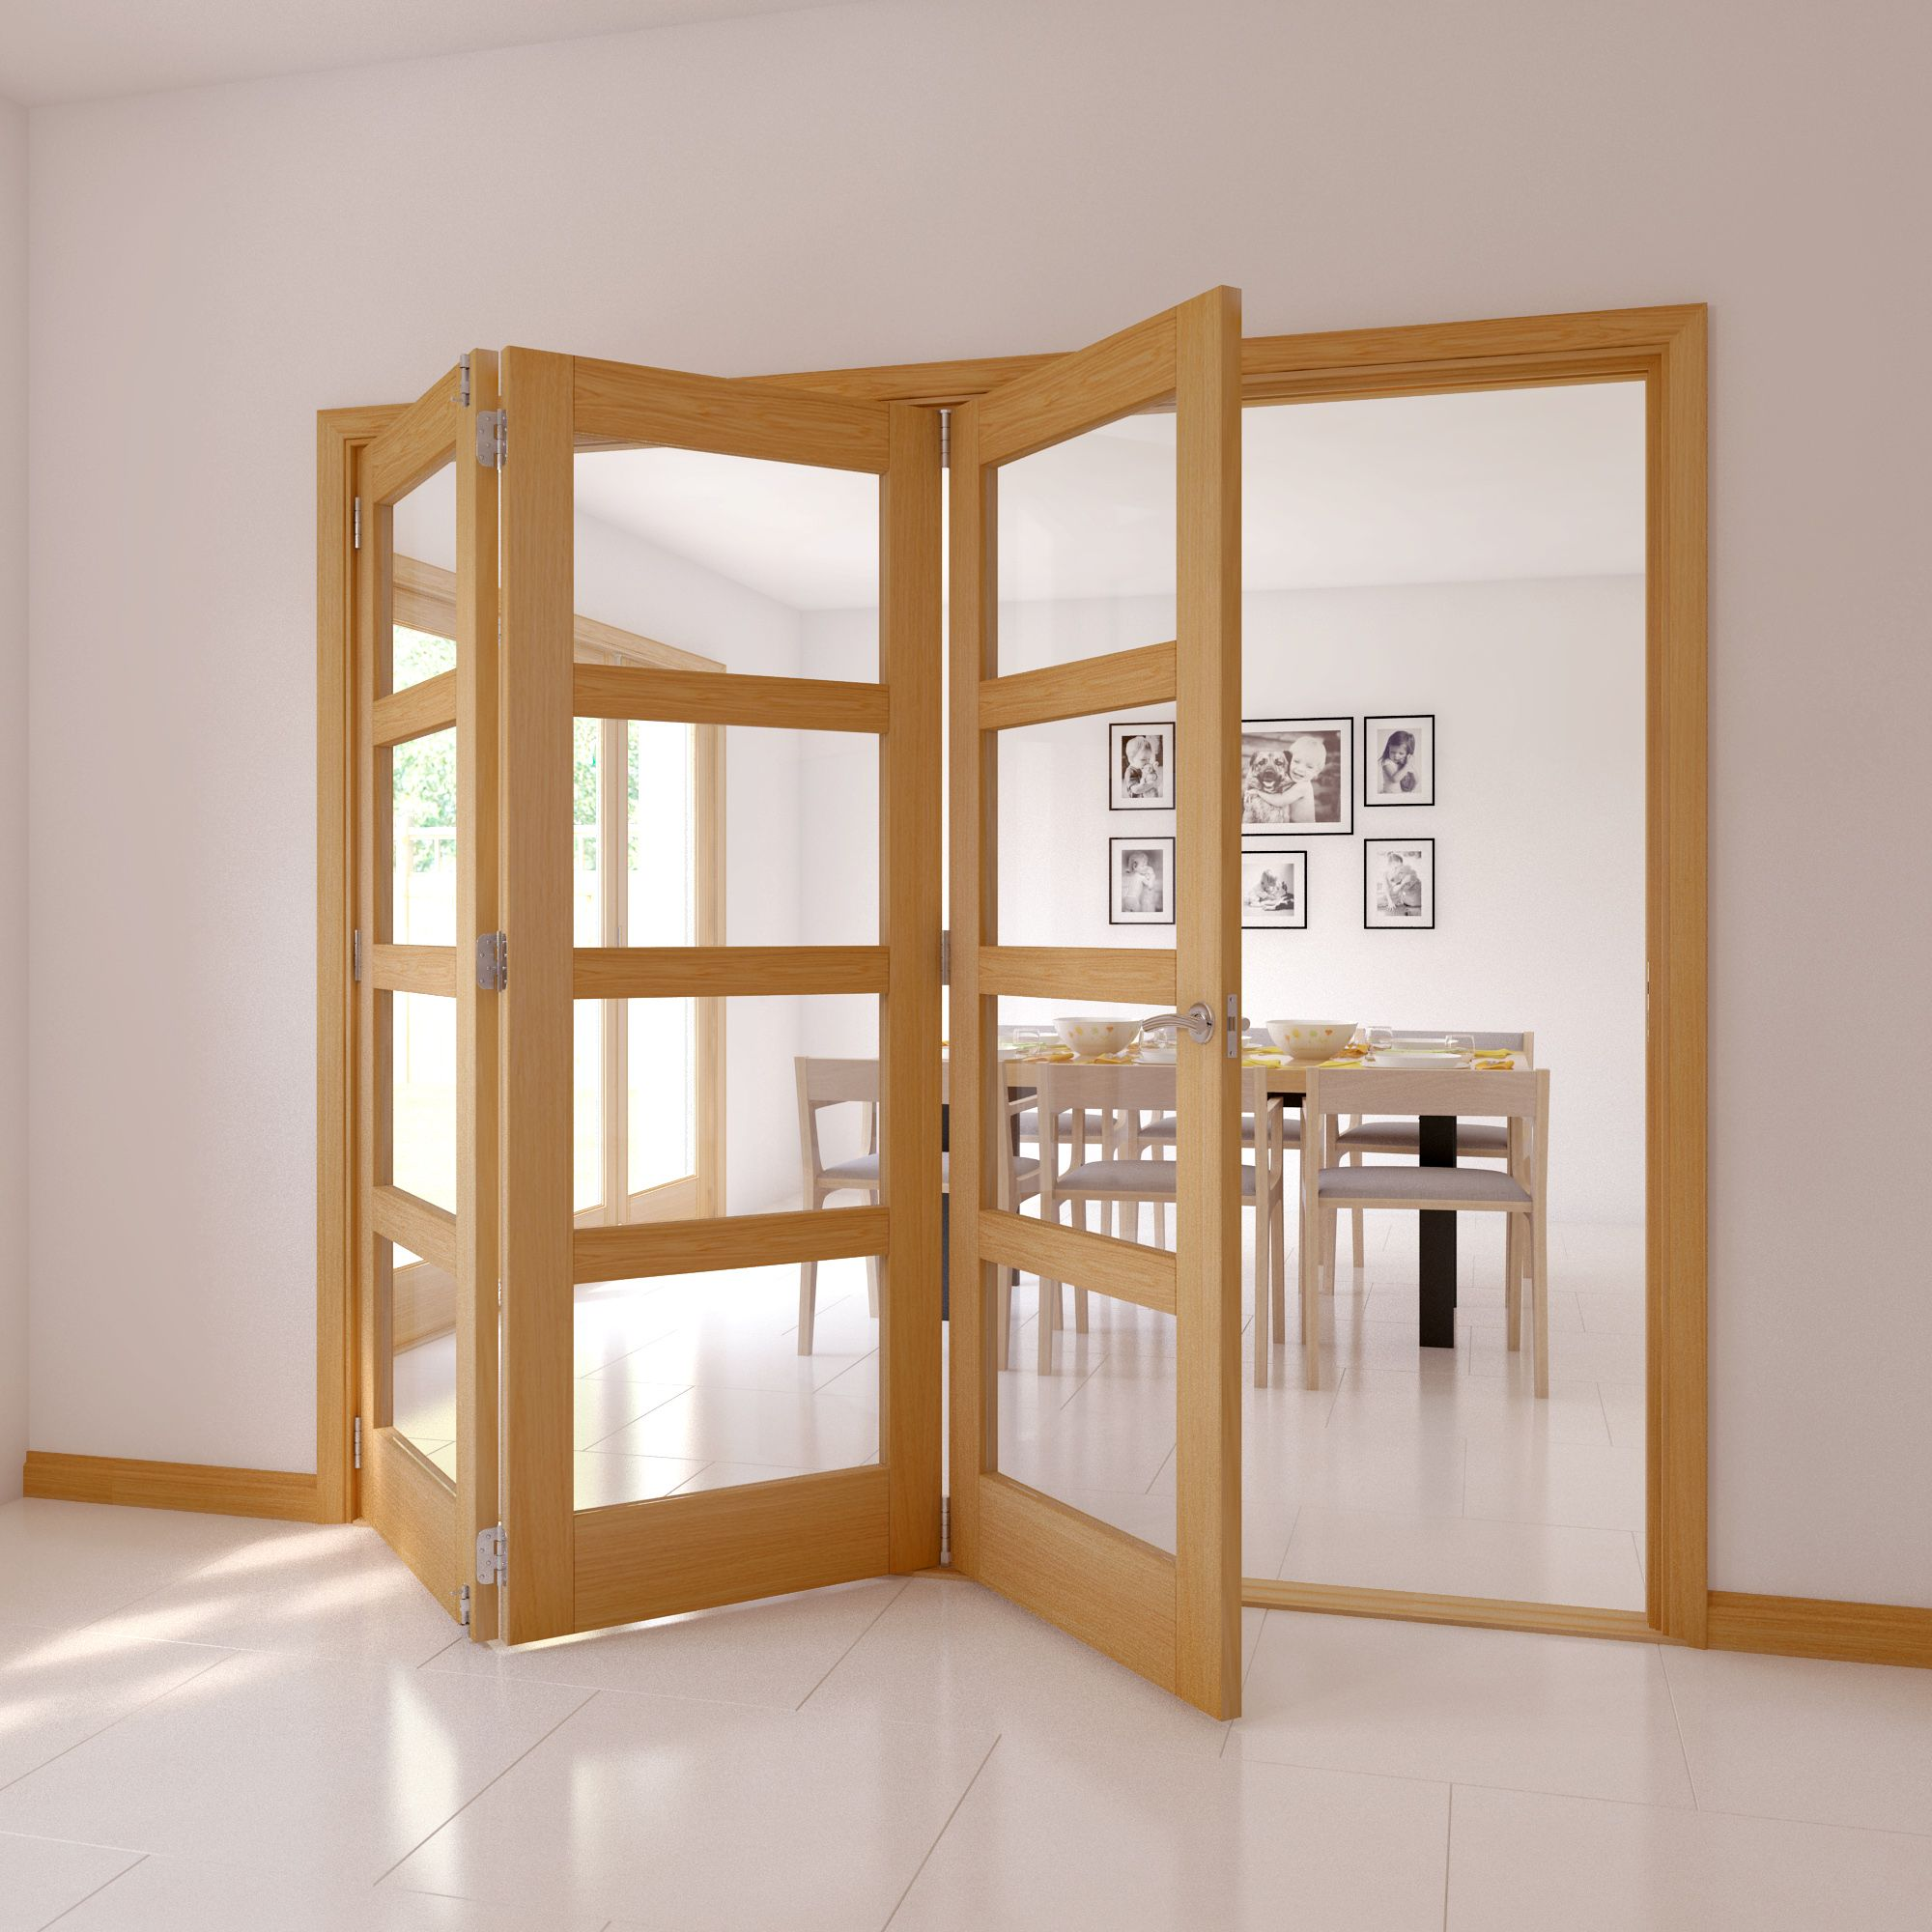 4 panel 4 lite oak veneer glazed internal folding door h2035mm w 4 panel 4 lite oak veneer glazed internal folding door h2035mm w2374mm departments diy at bq planetlyrics Image collections